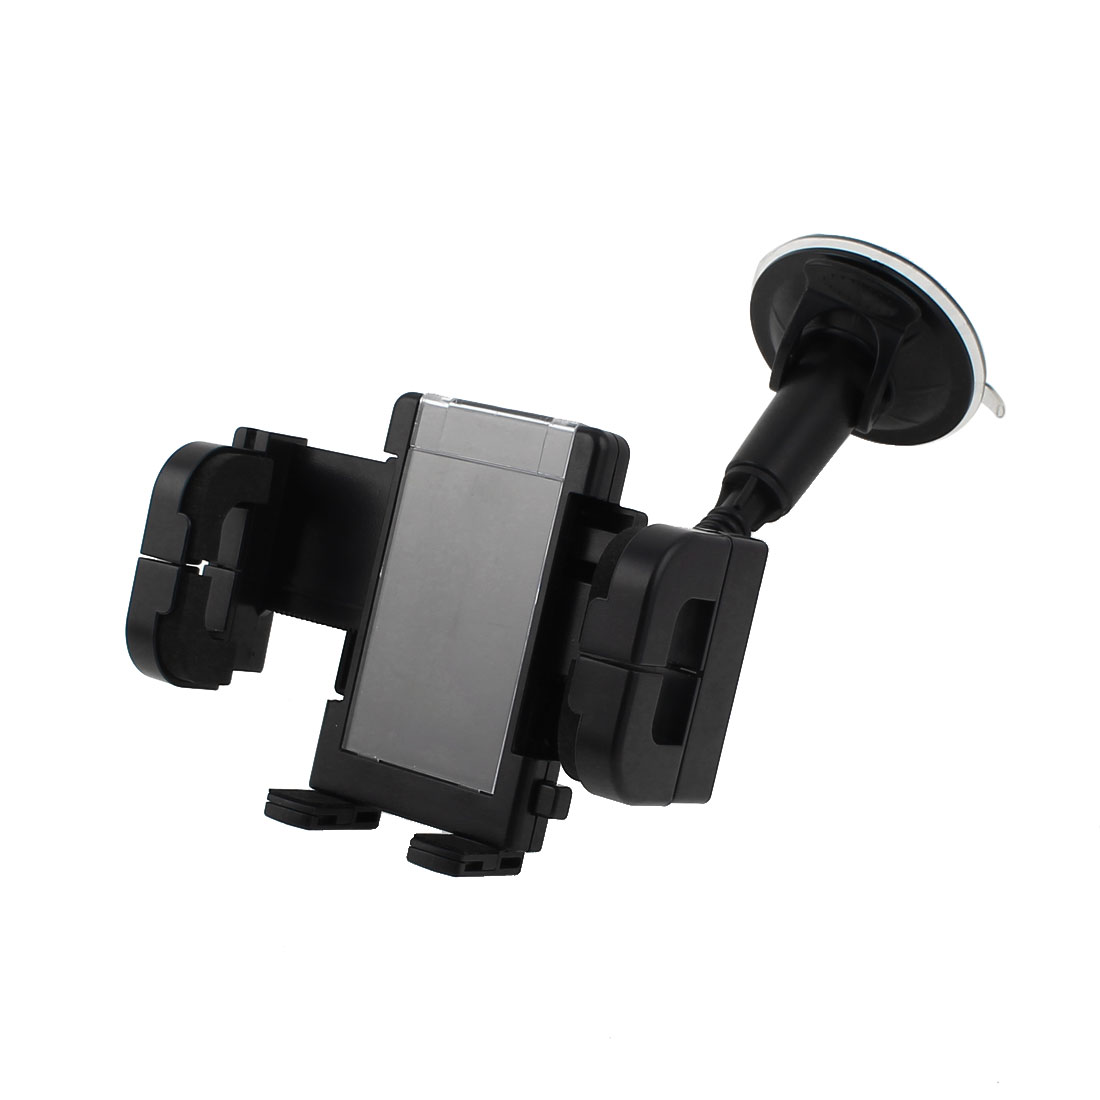 Car Universal Windshield Mount Cradle Holder for Mobile phone GPS